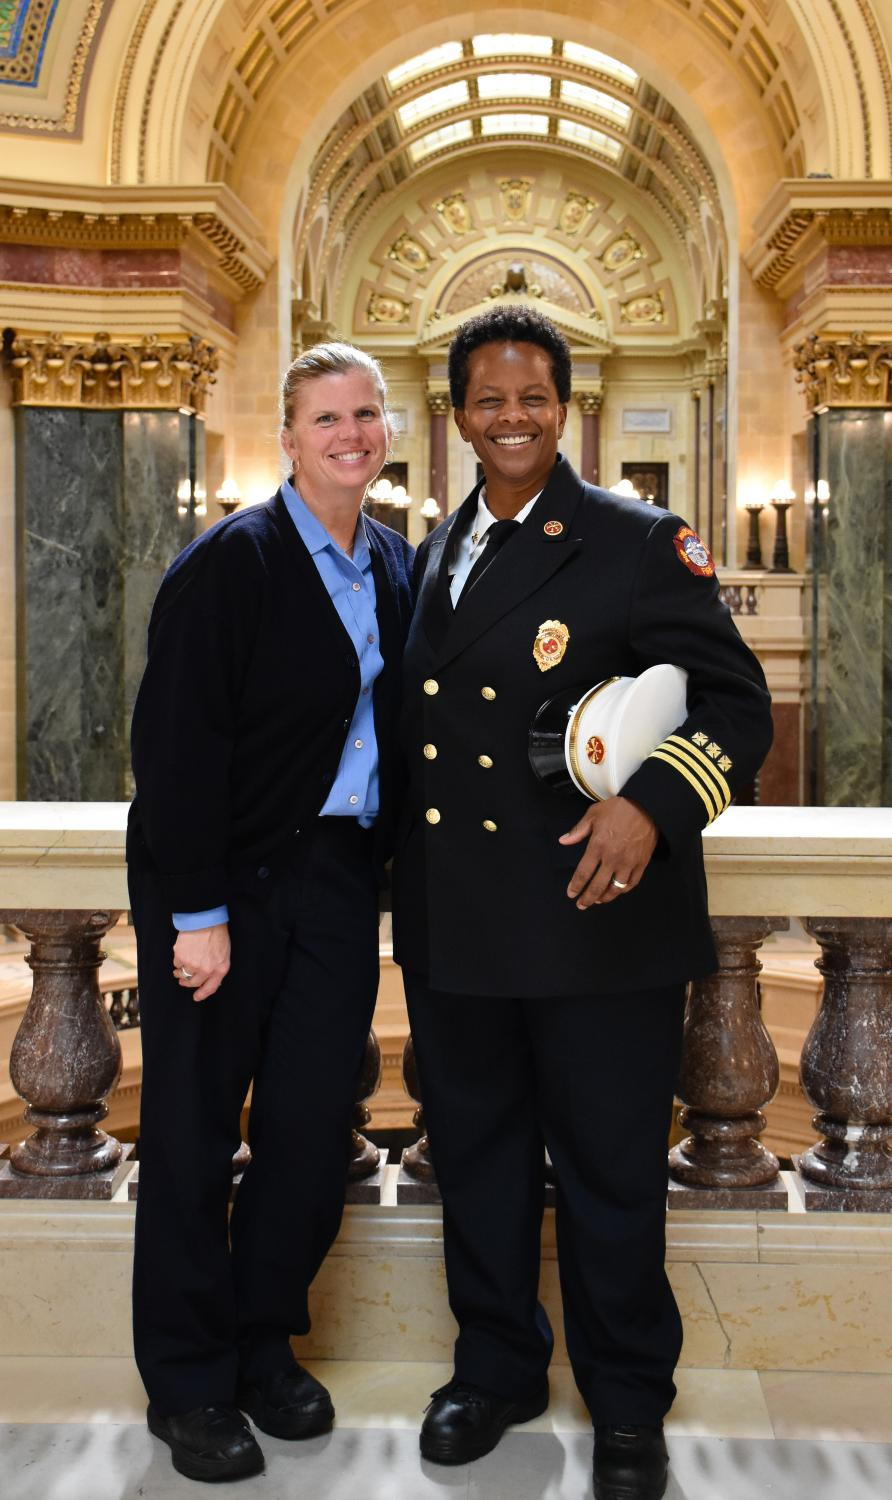 Division Chief Burrus and her wife